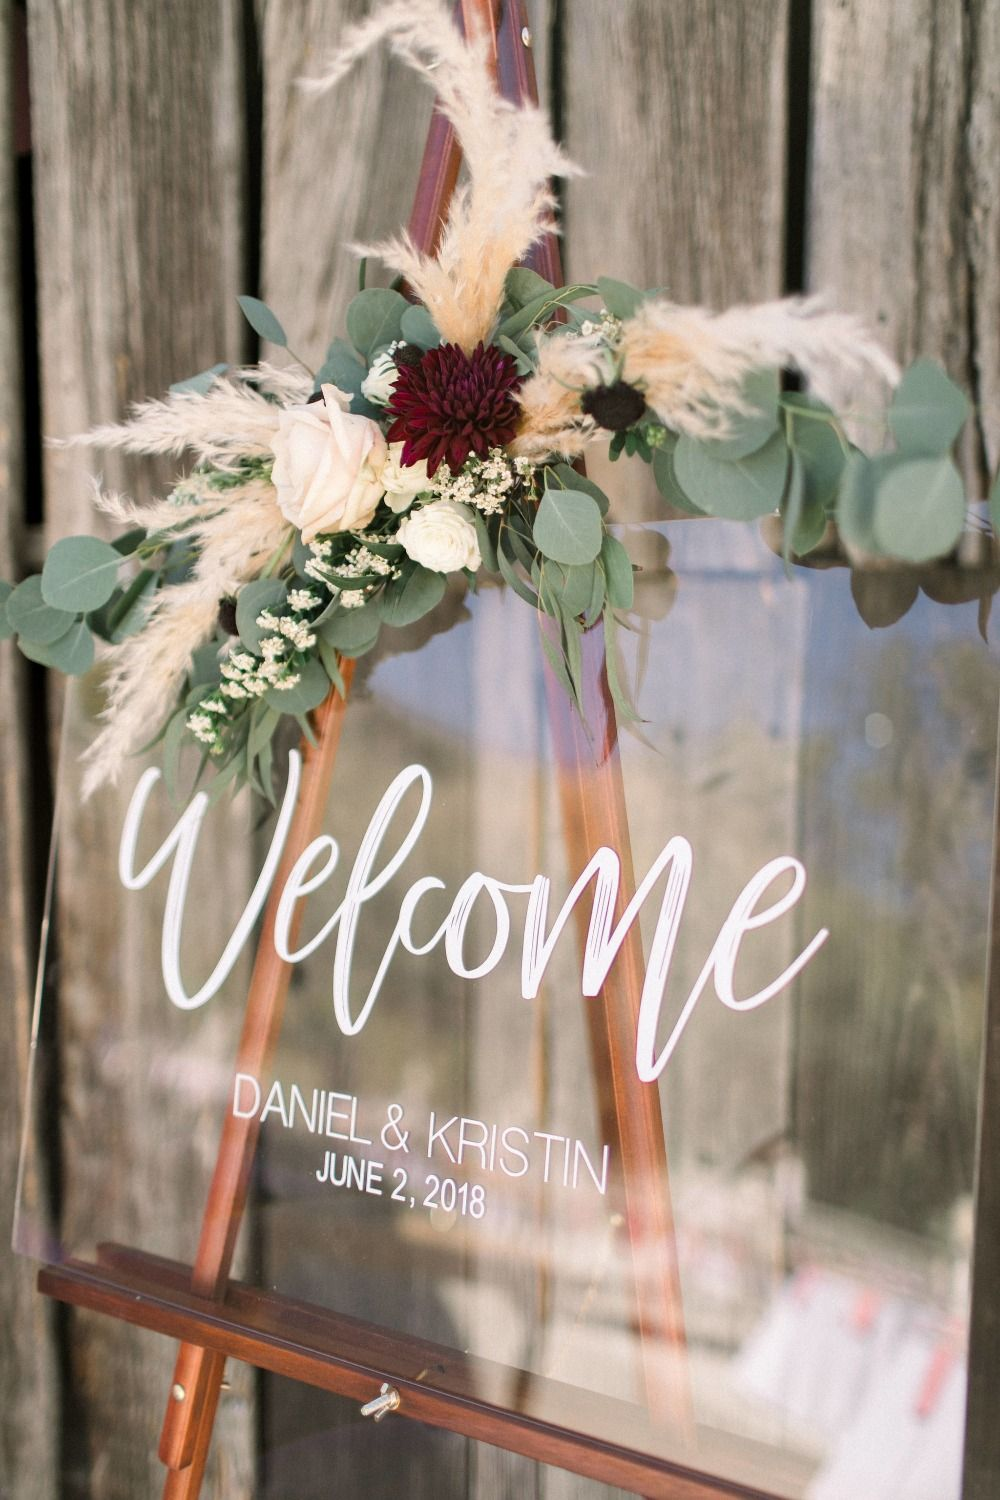 How To Have A Diy Wedding Without Hiring A Planner Wedding Signs Diy Wedding Welcome Signs Diy Wedding